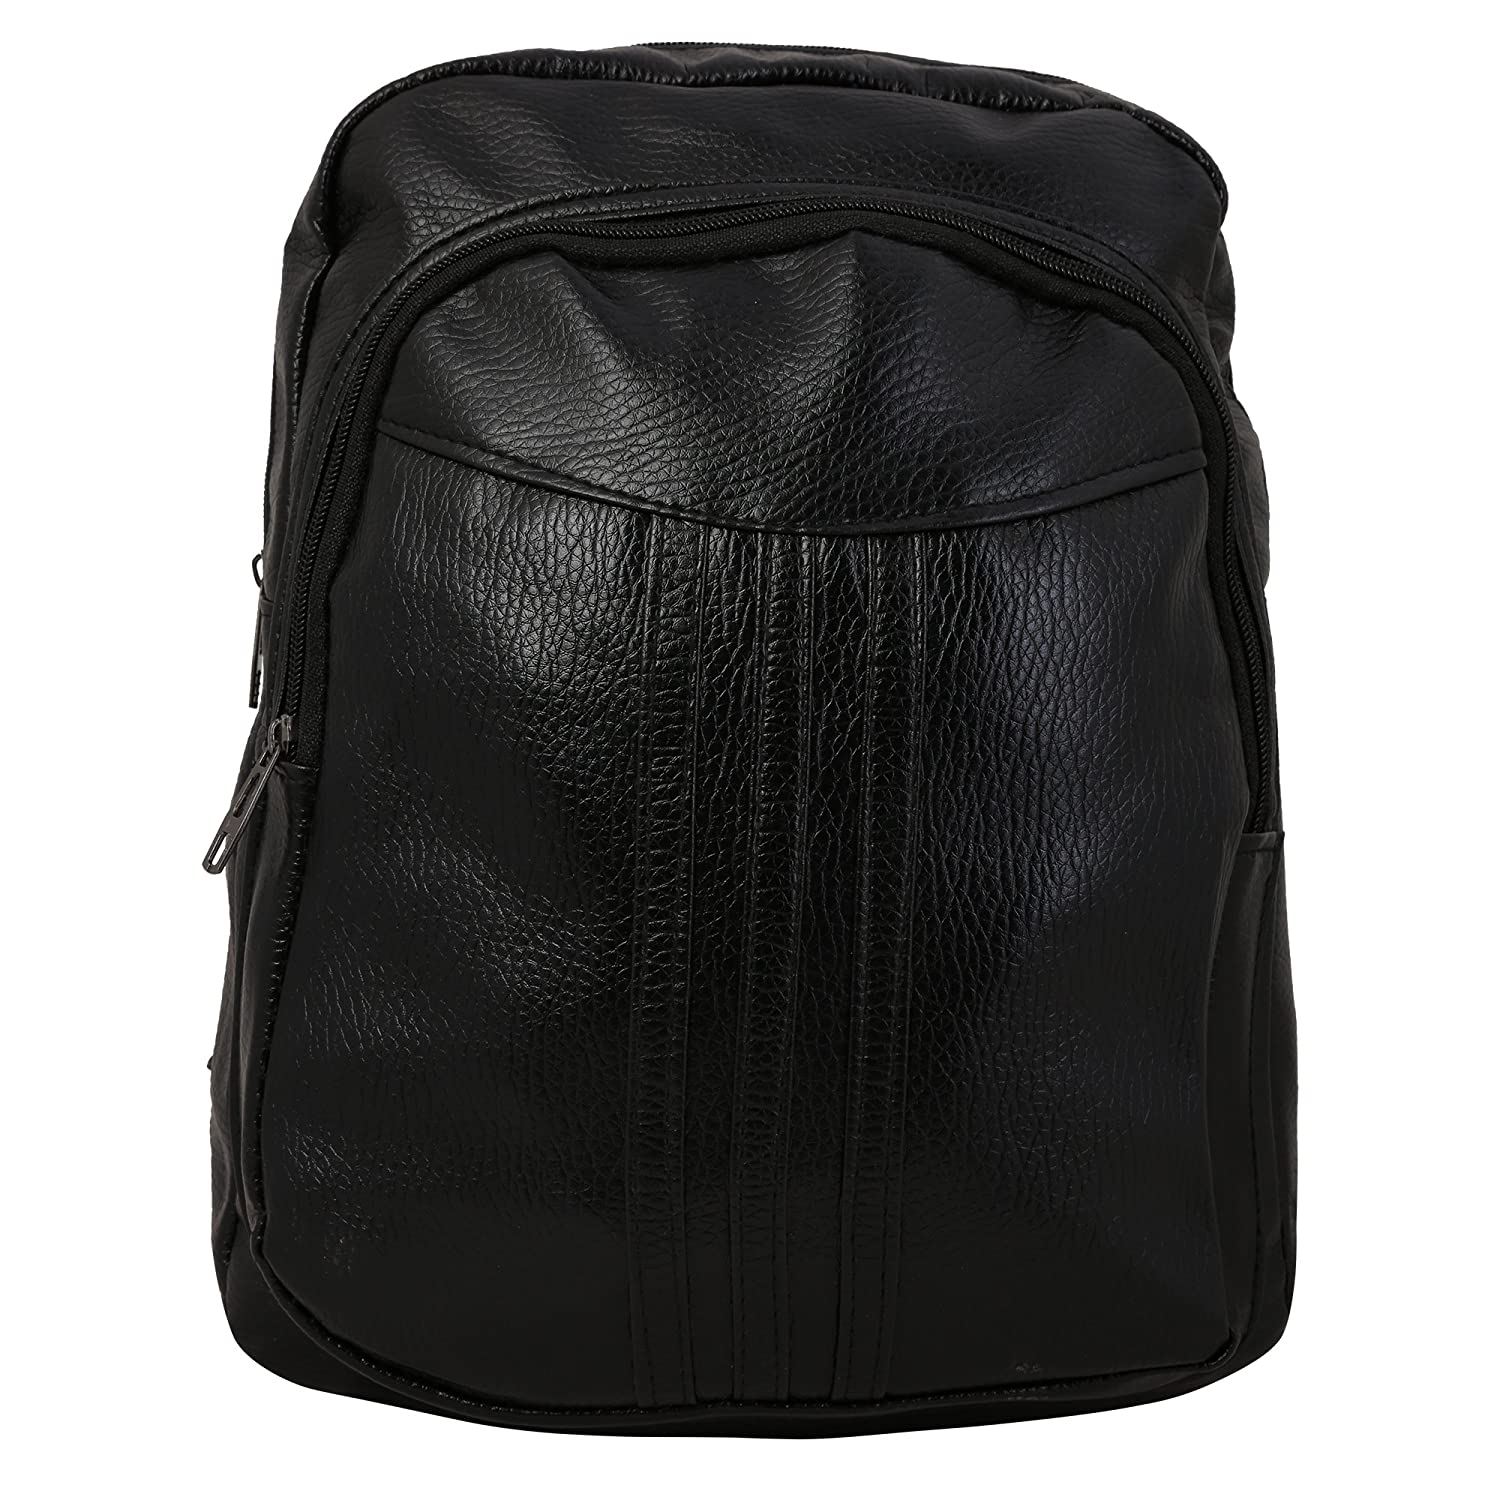 8e19c8ad4f Busta Black Color Faux Leather Backpack Bag For Women Ladies Girl   Amazon.in  Shoes   Handbags